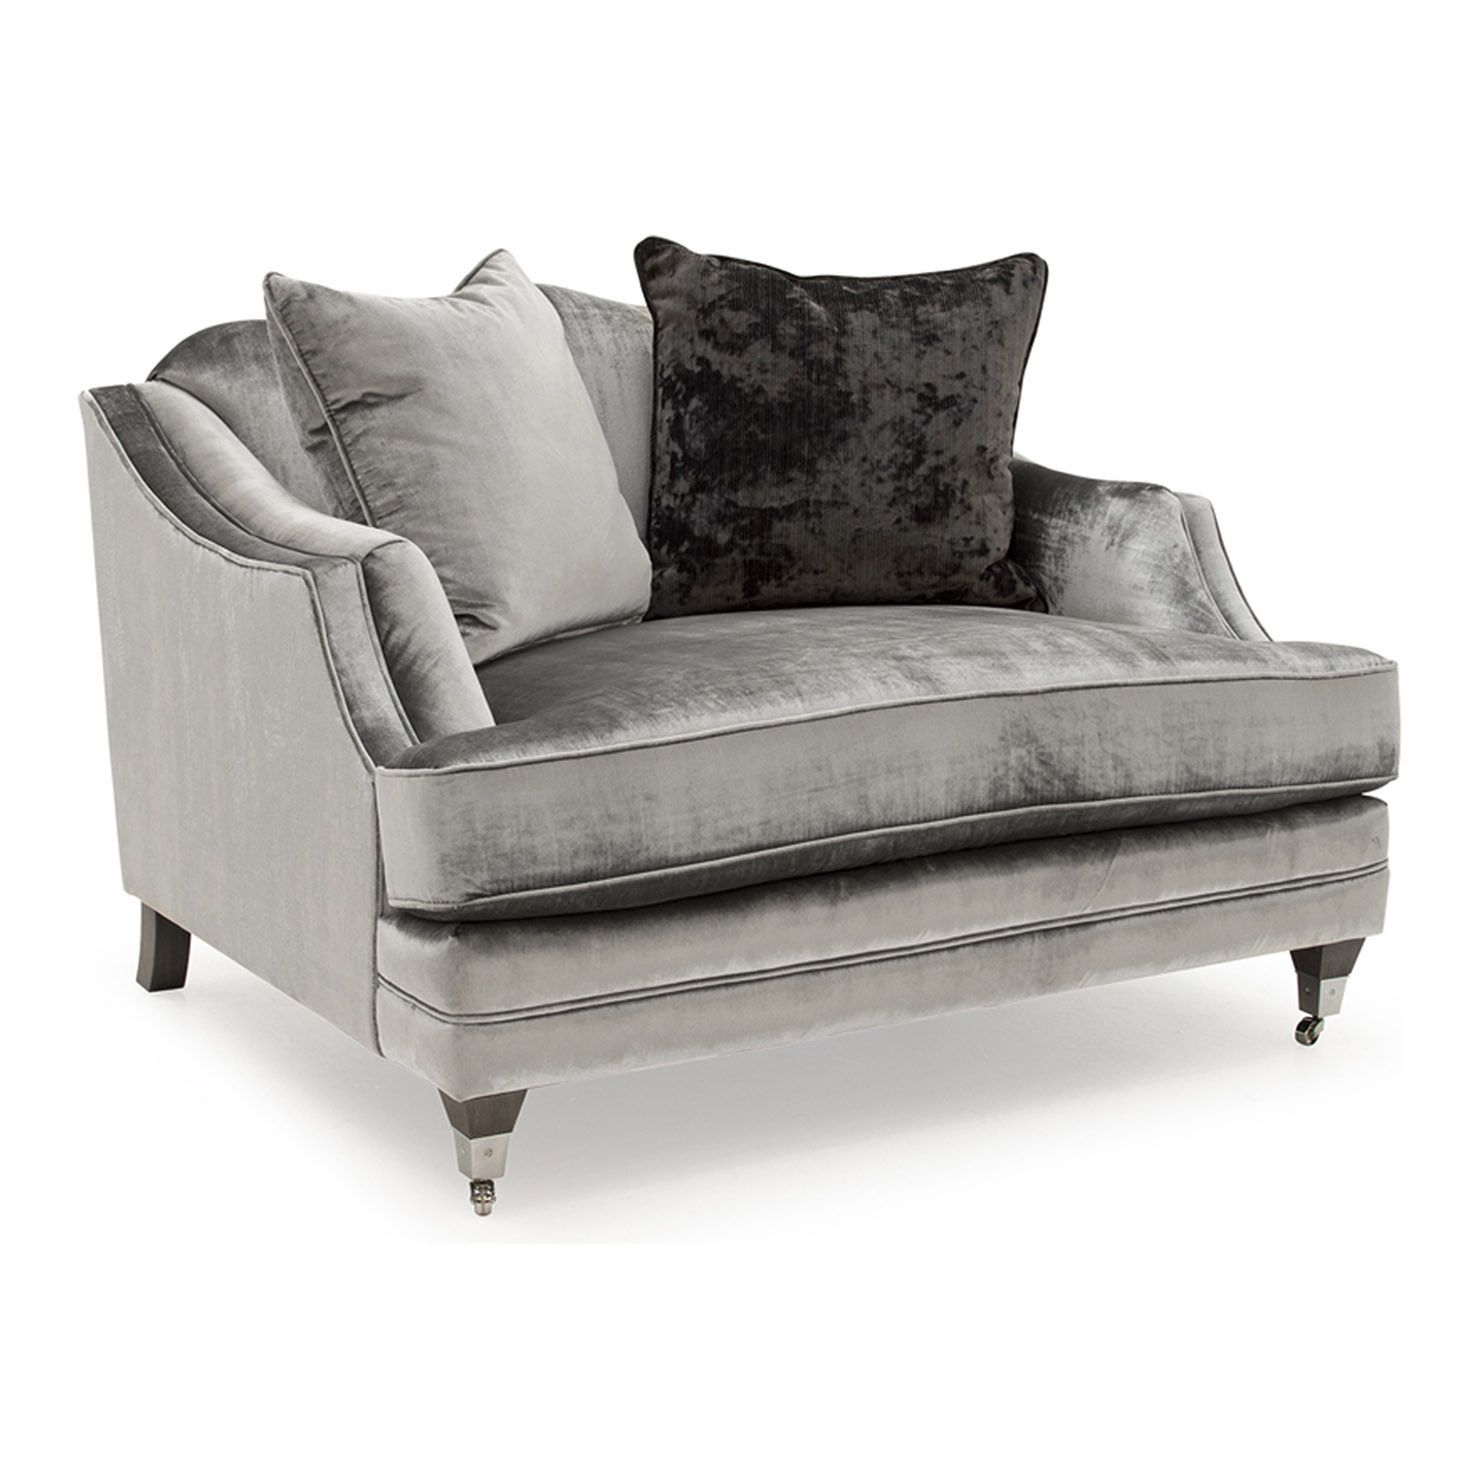 Sofa Covers Scatter Back Seater Sofa Grey